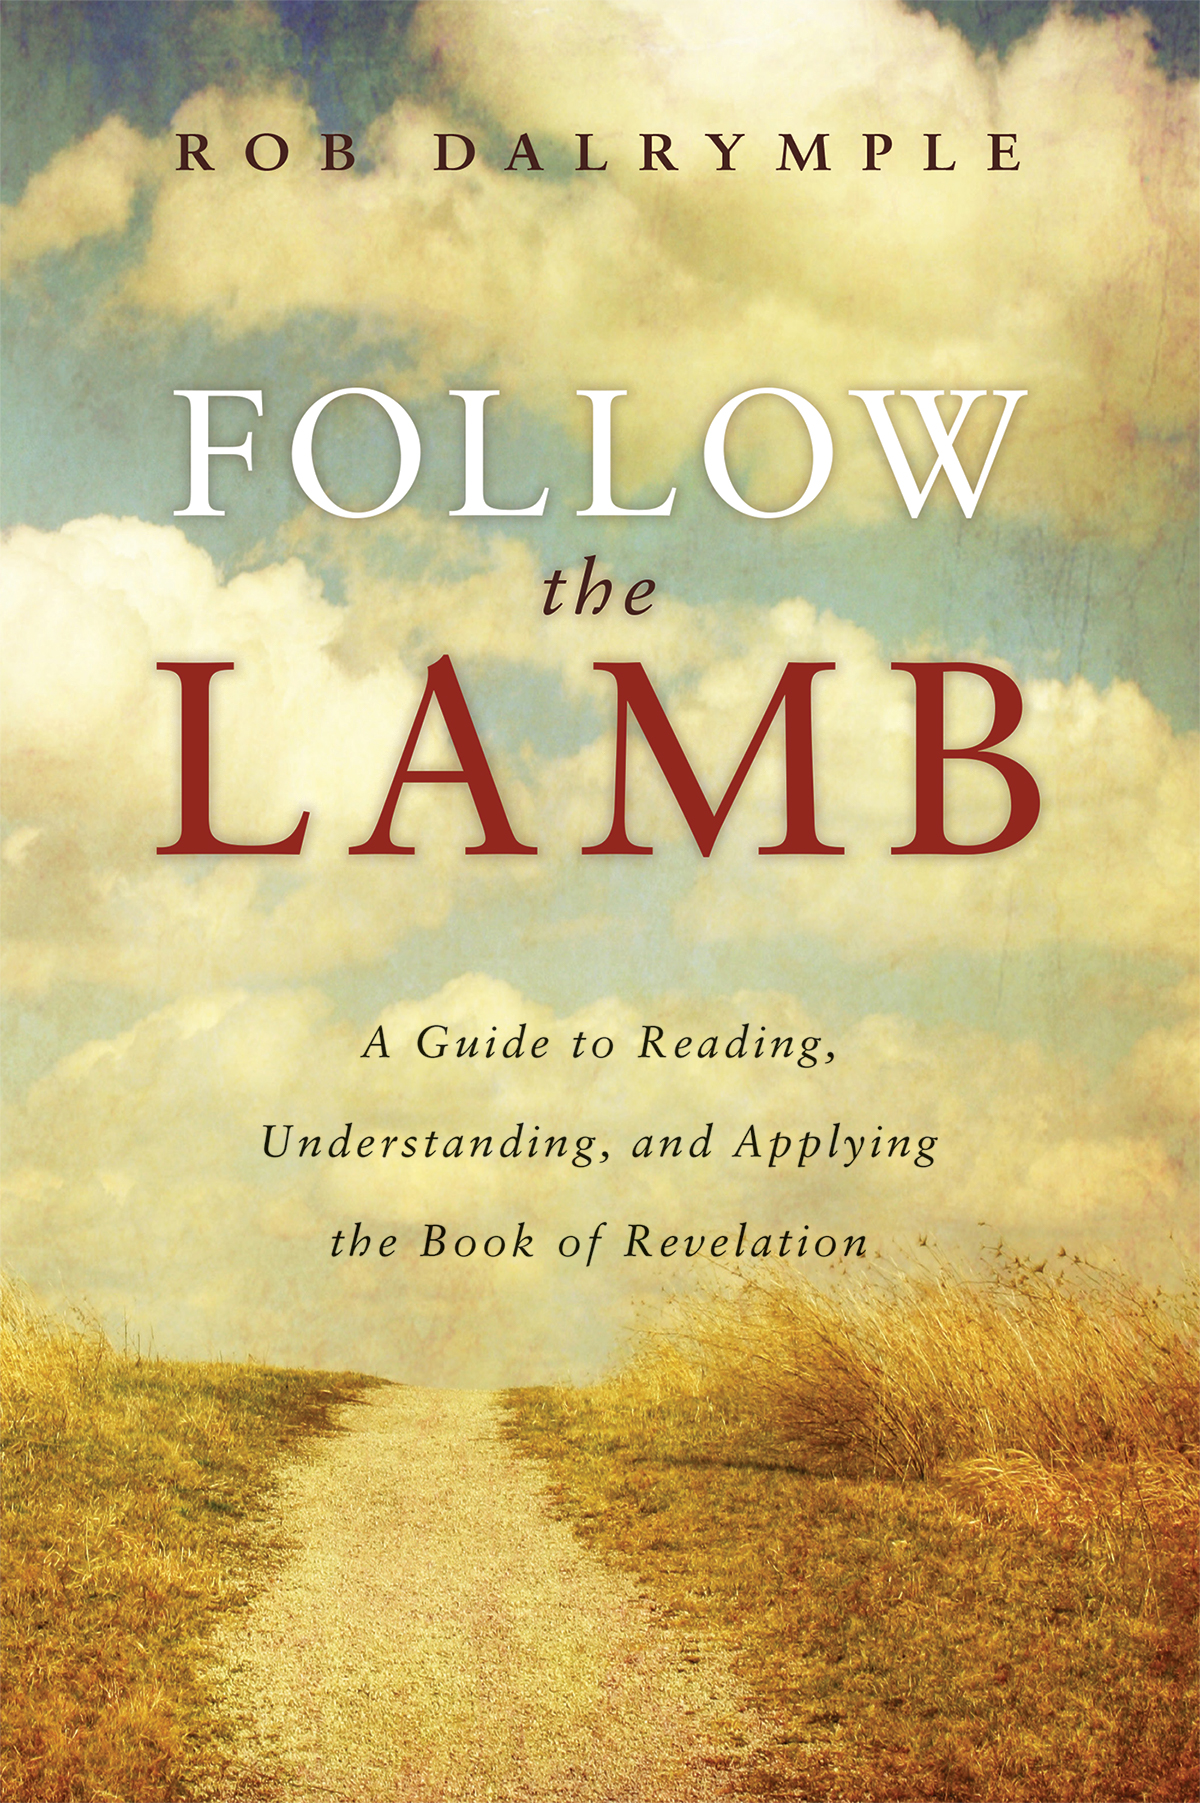 Follow the Lamb: A Guide to Reading, Understanding, and Applying the Book of Revelation